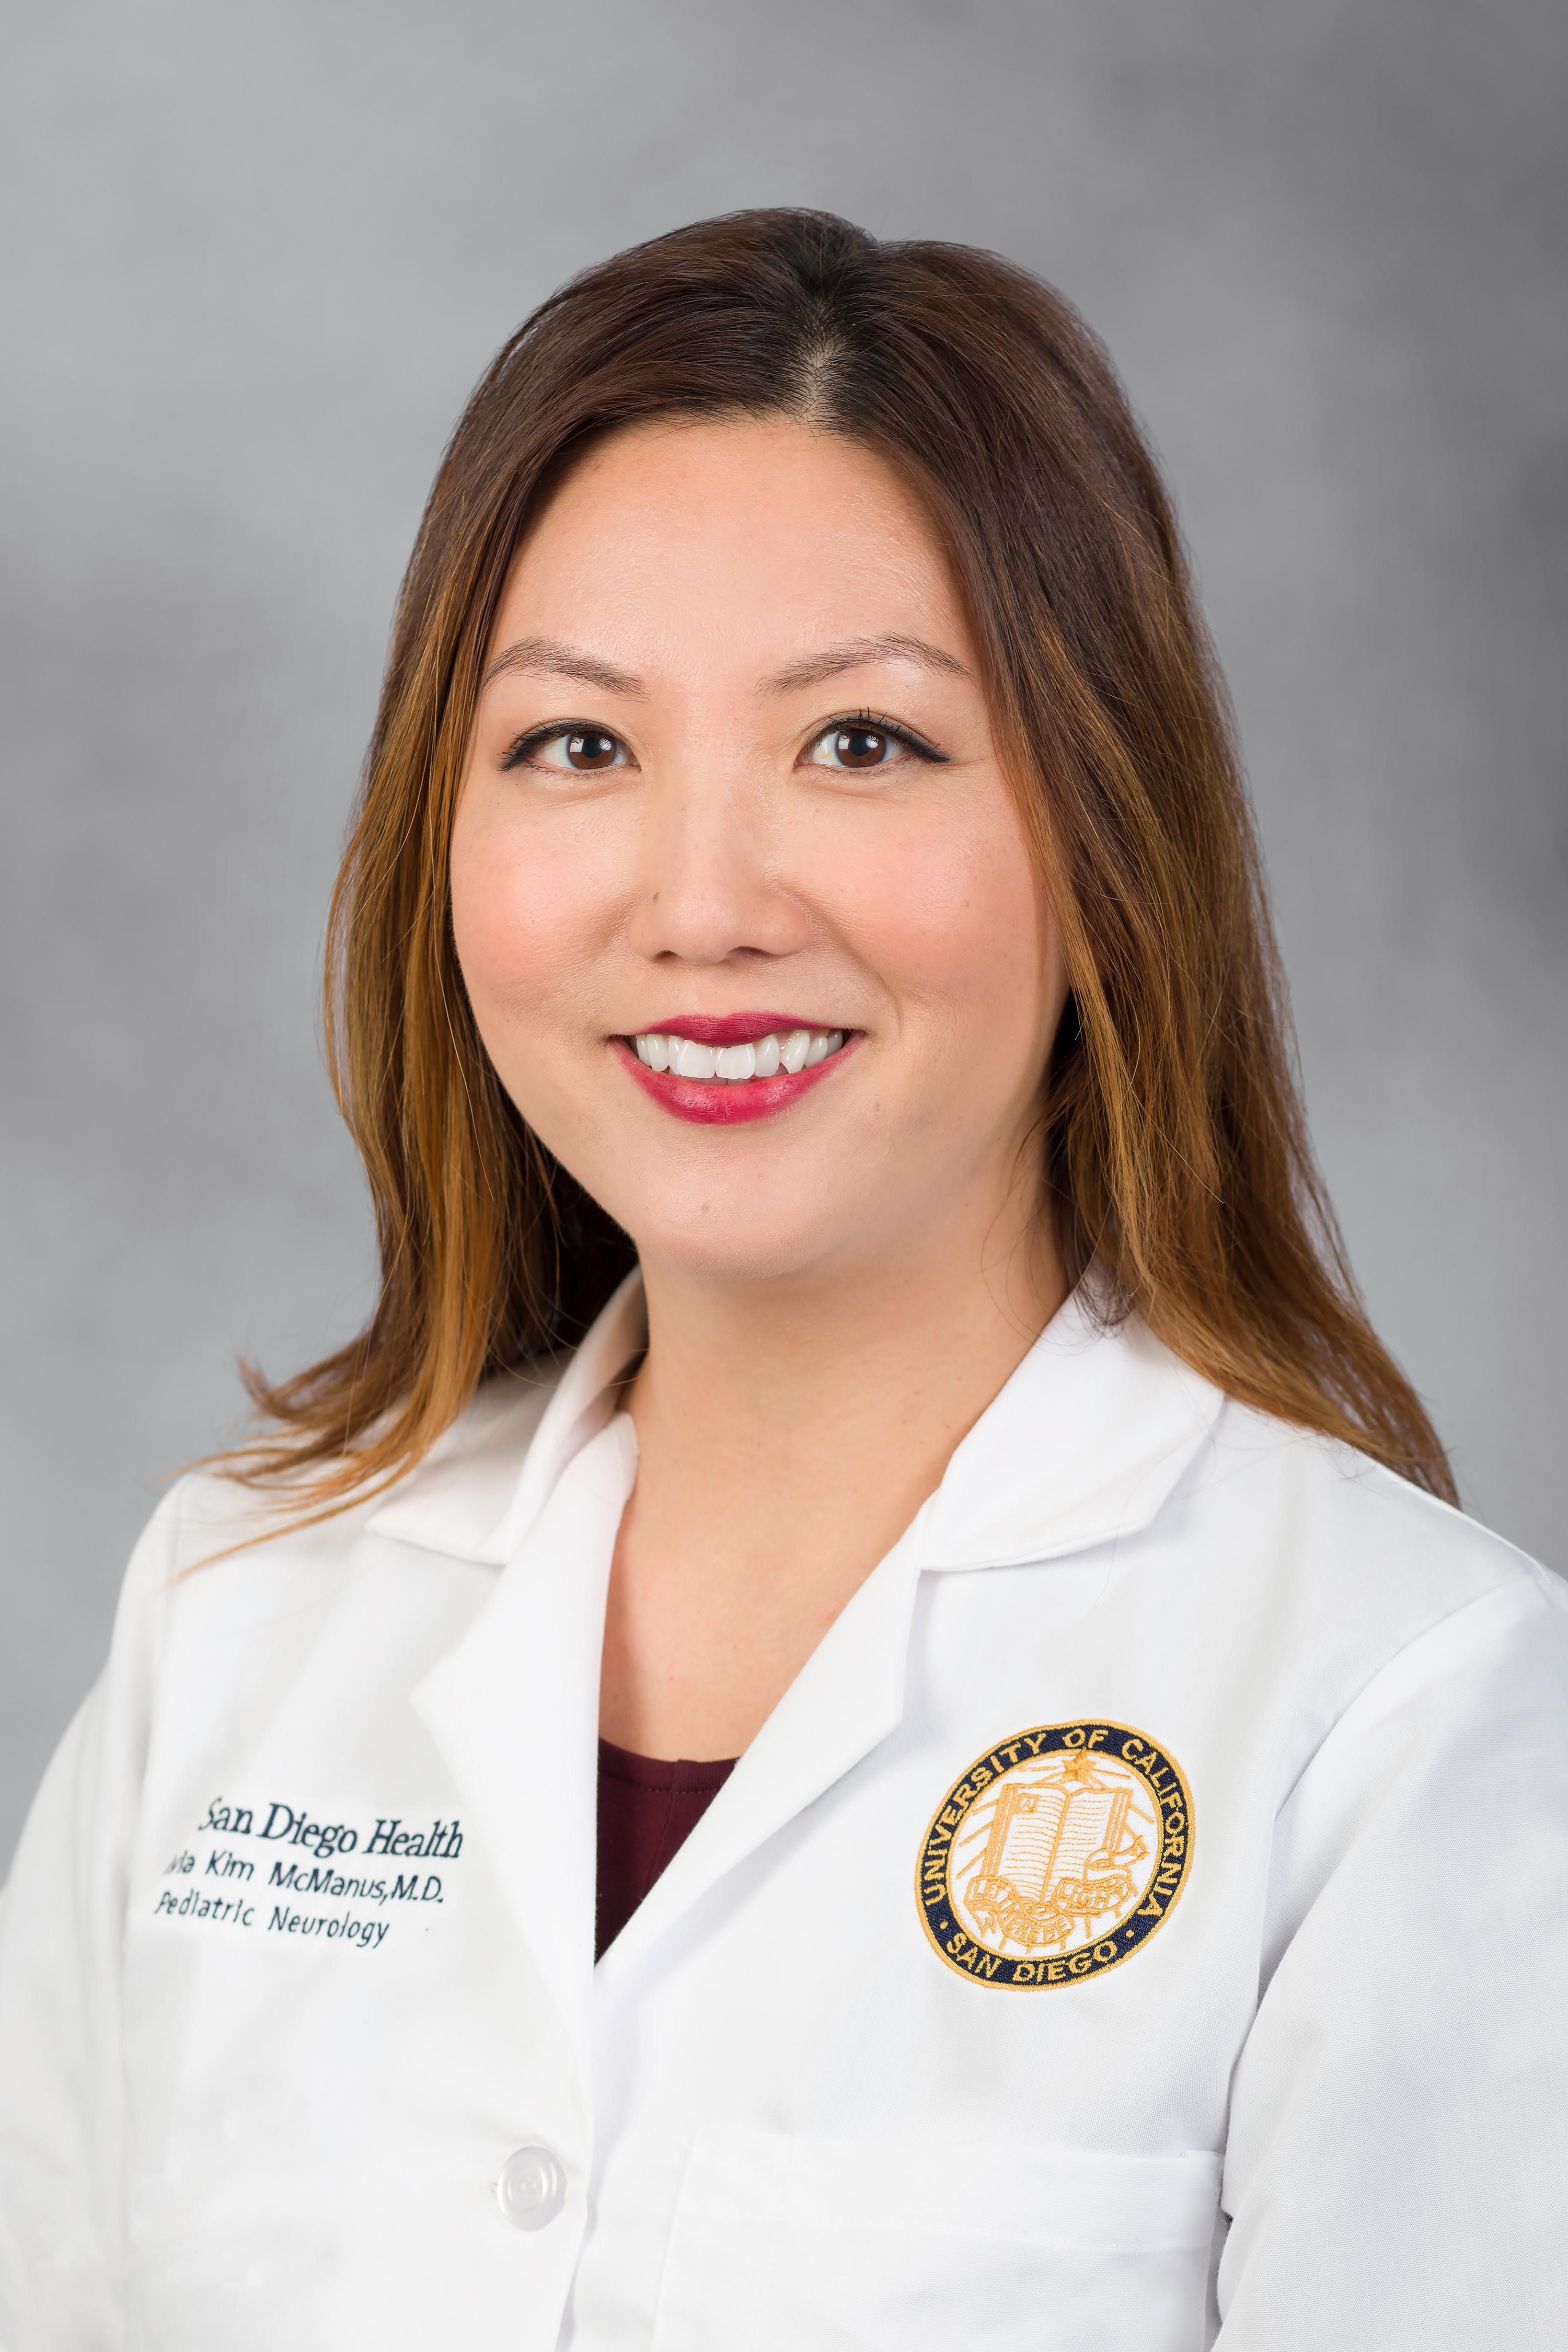 Image For Dr. Olivia  Kim McManus MD